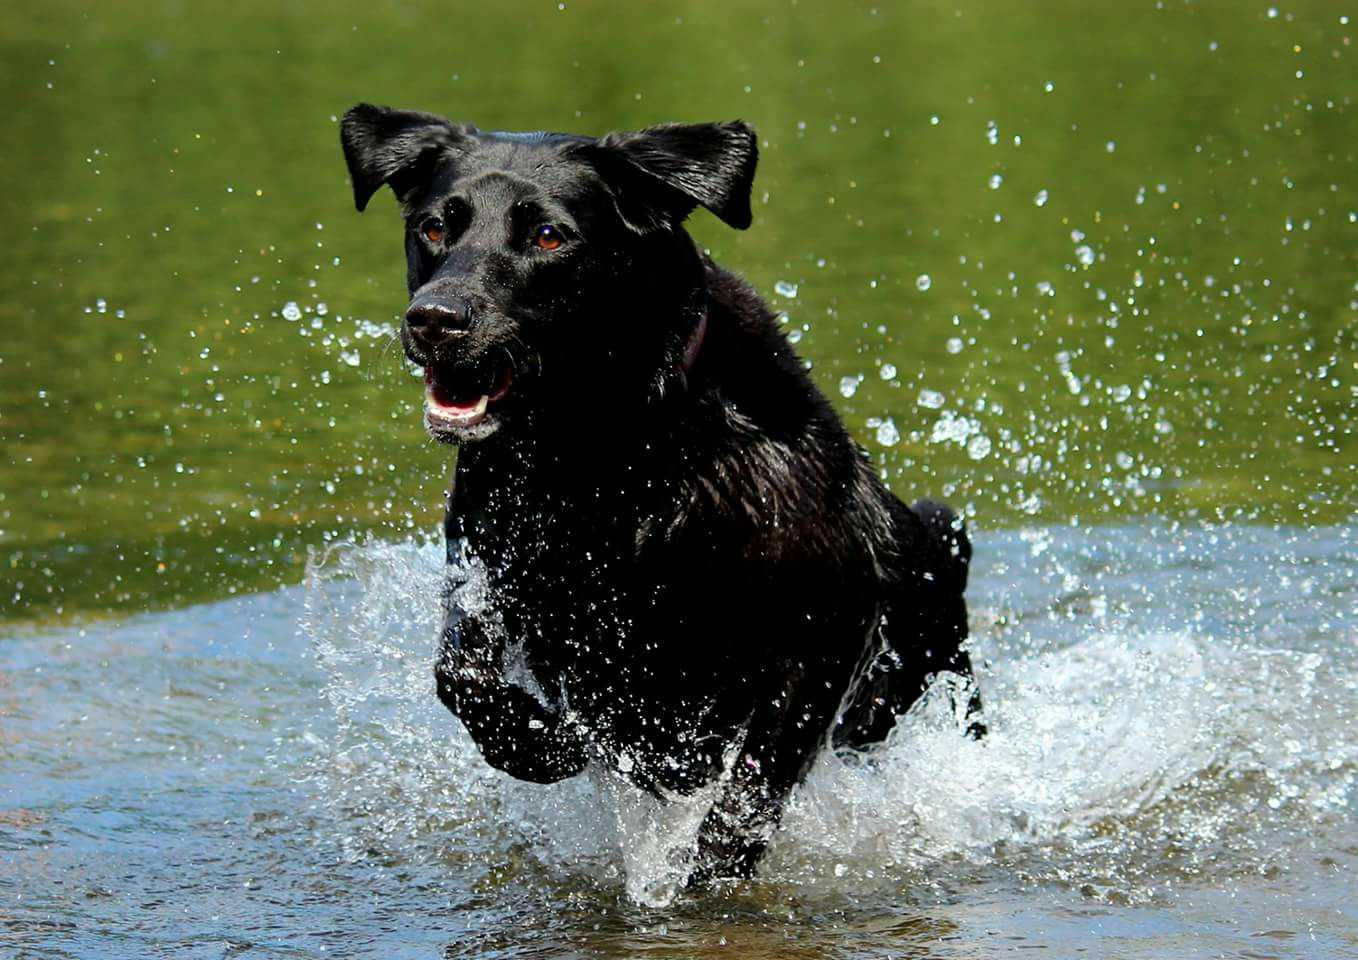 Dog running through water